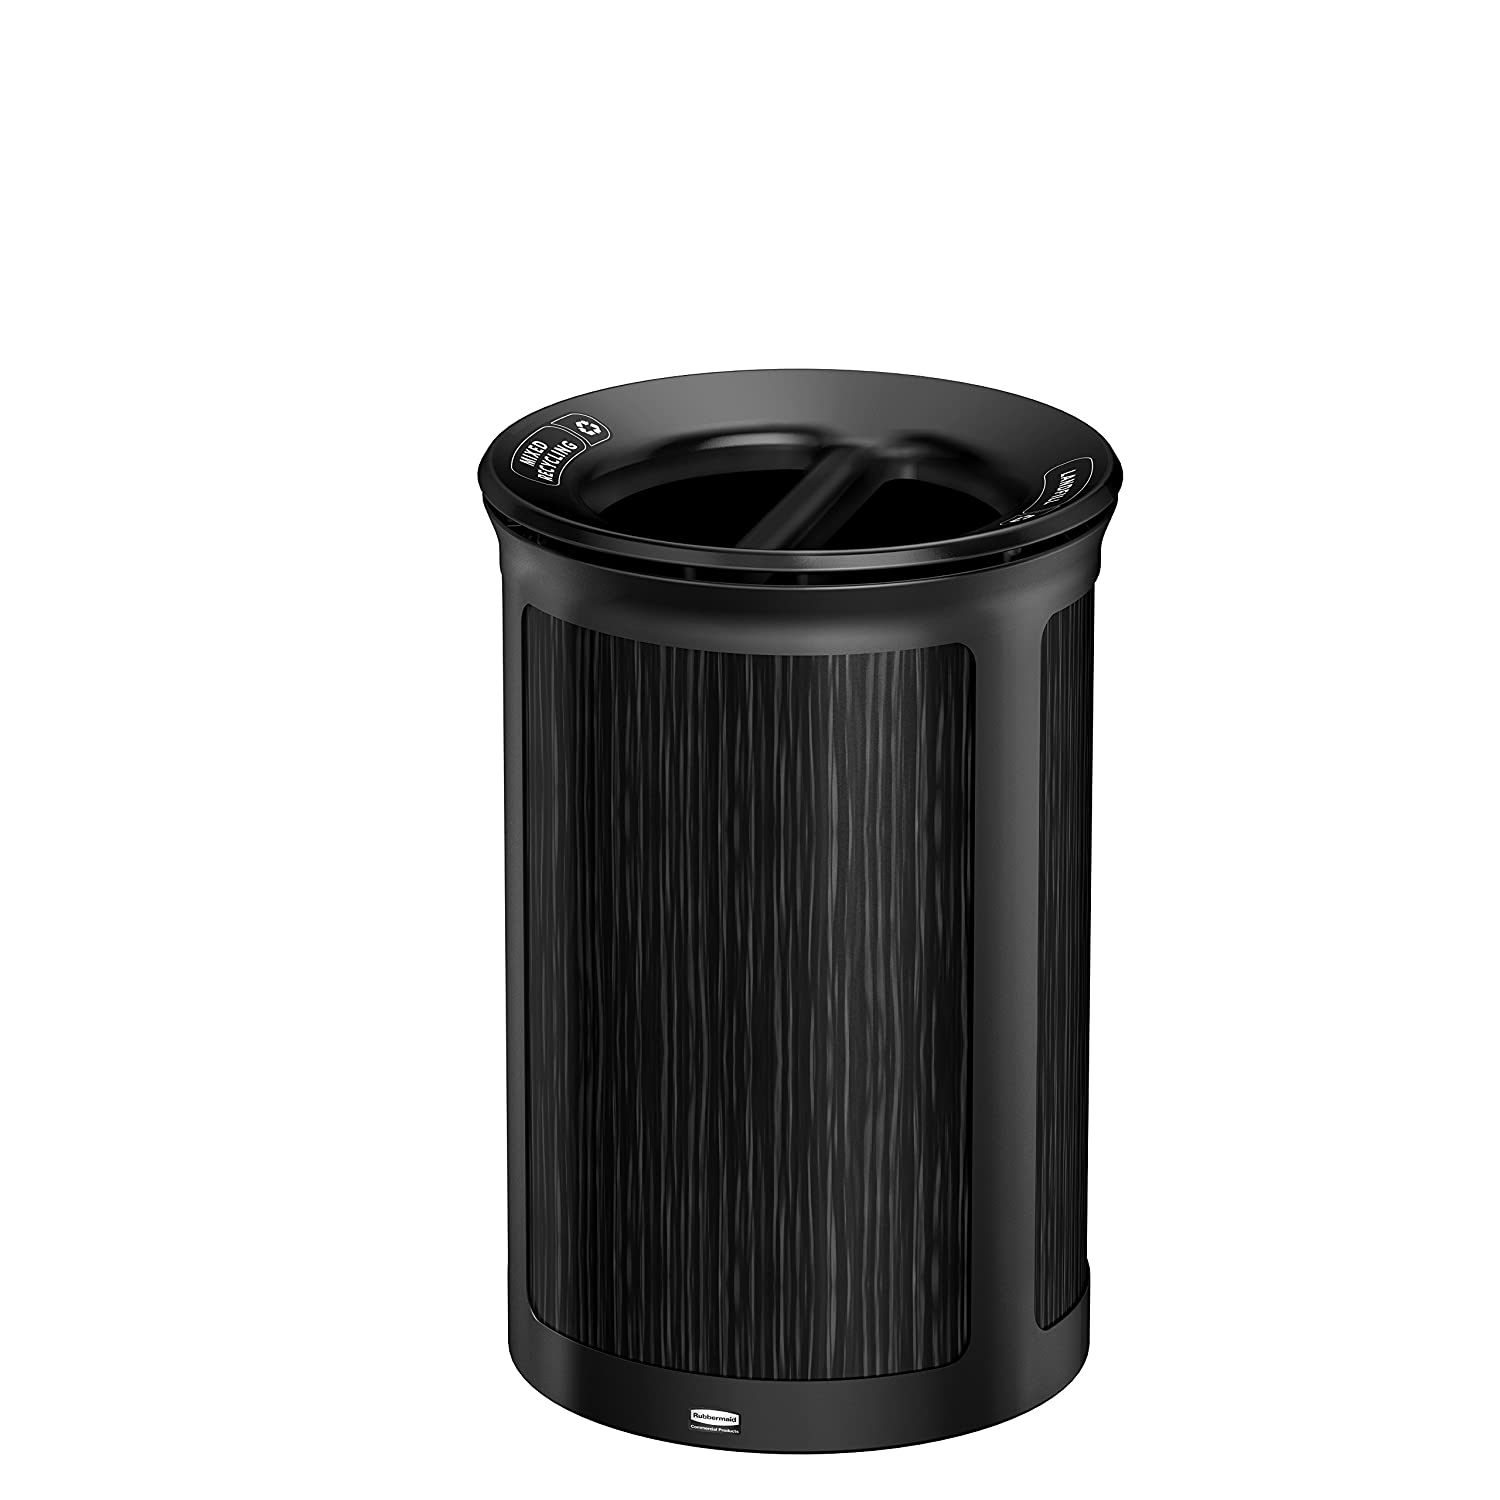 Rubbermaid Commercial Products 1970177 Enhance Trash Can, 2-Stream, 23 gal, Round, Jet Black Metallic/Ebony, 30.000